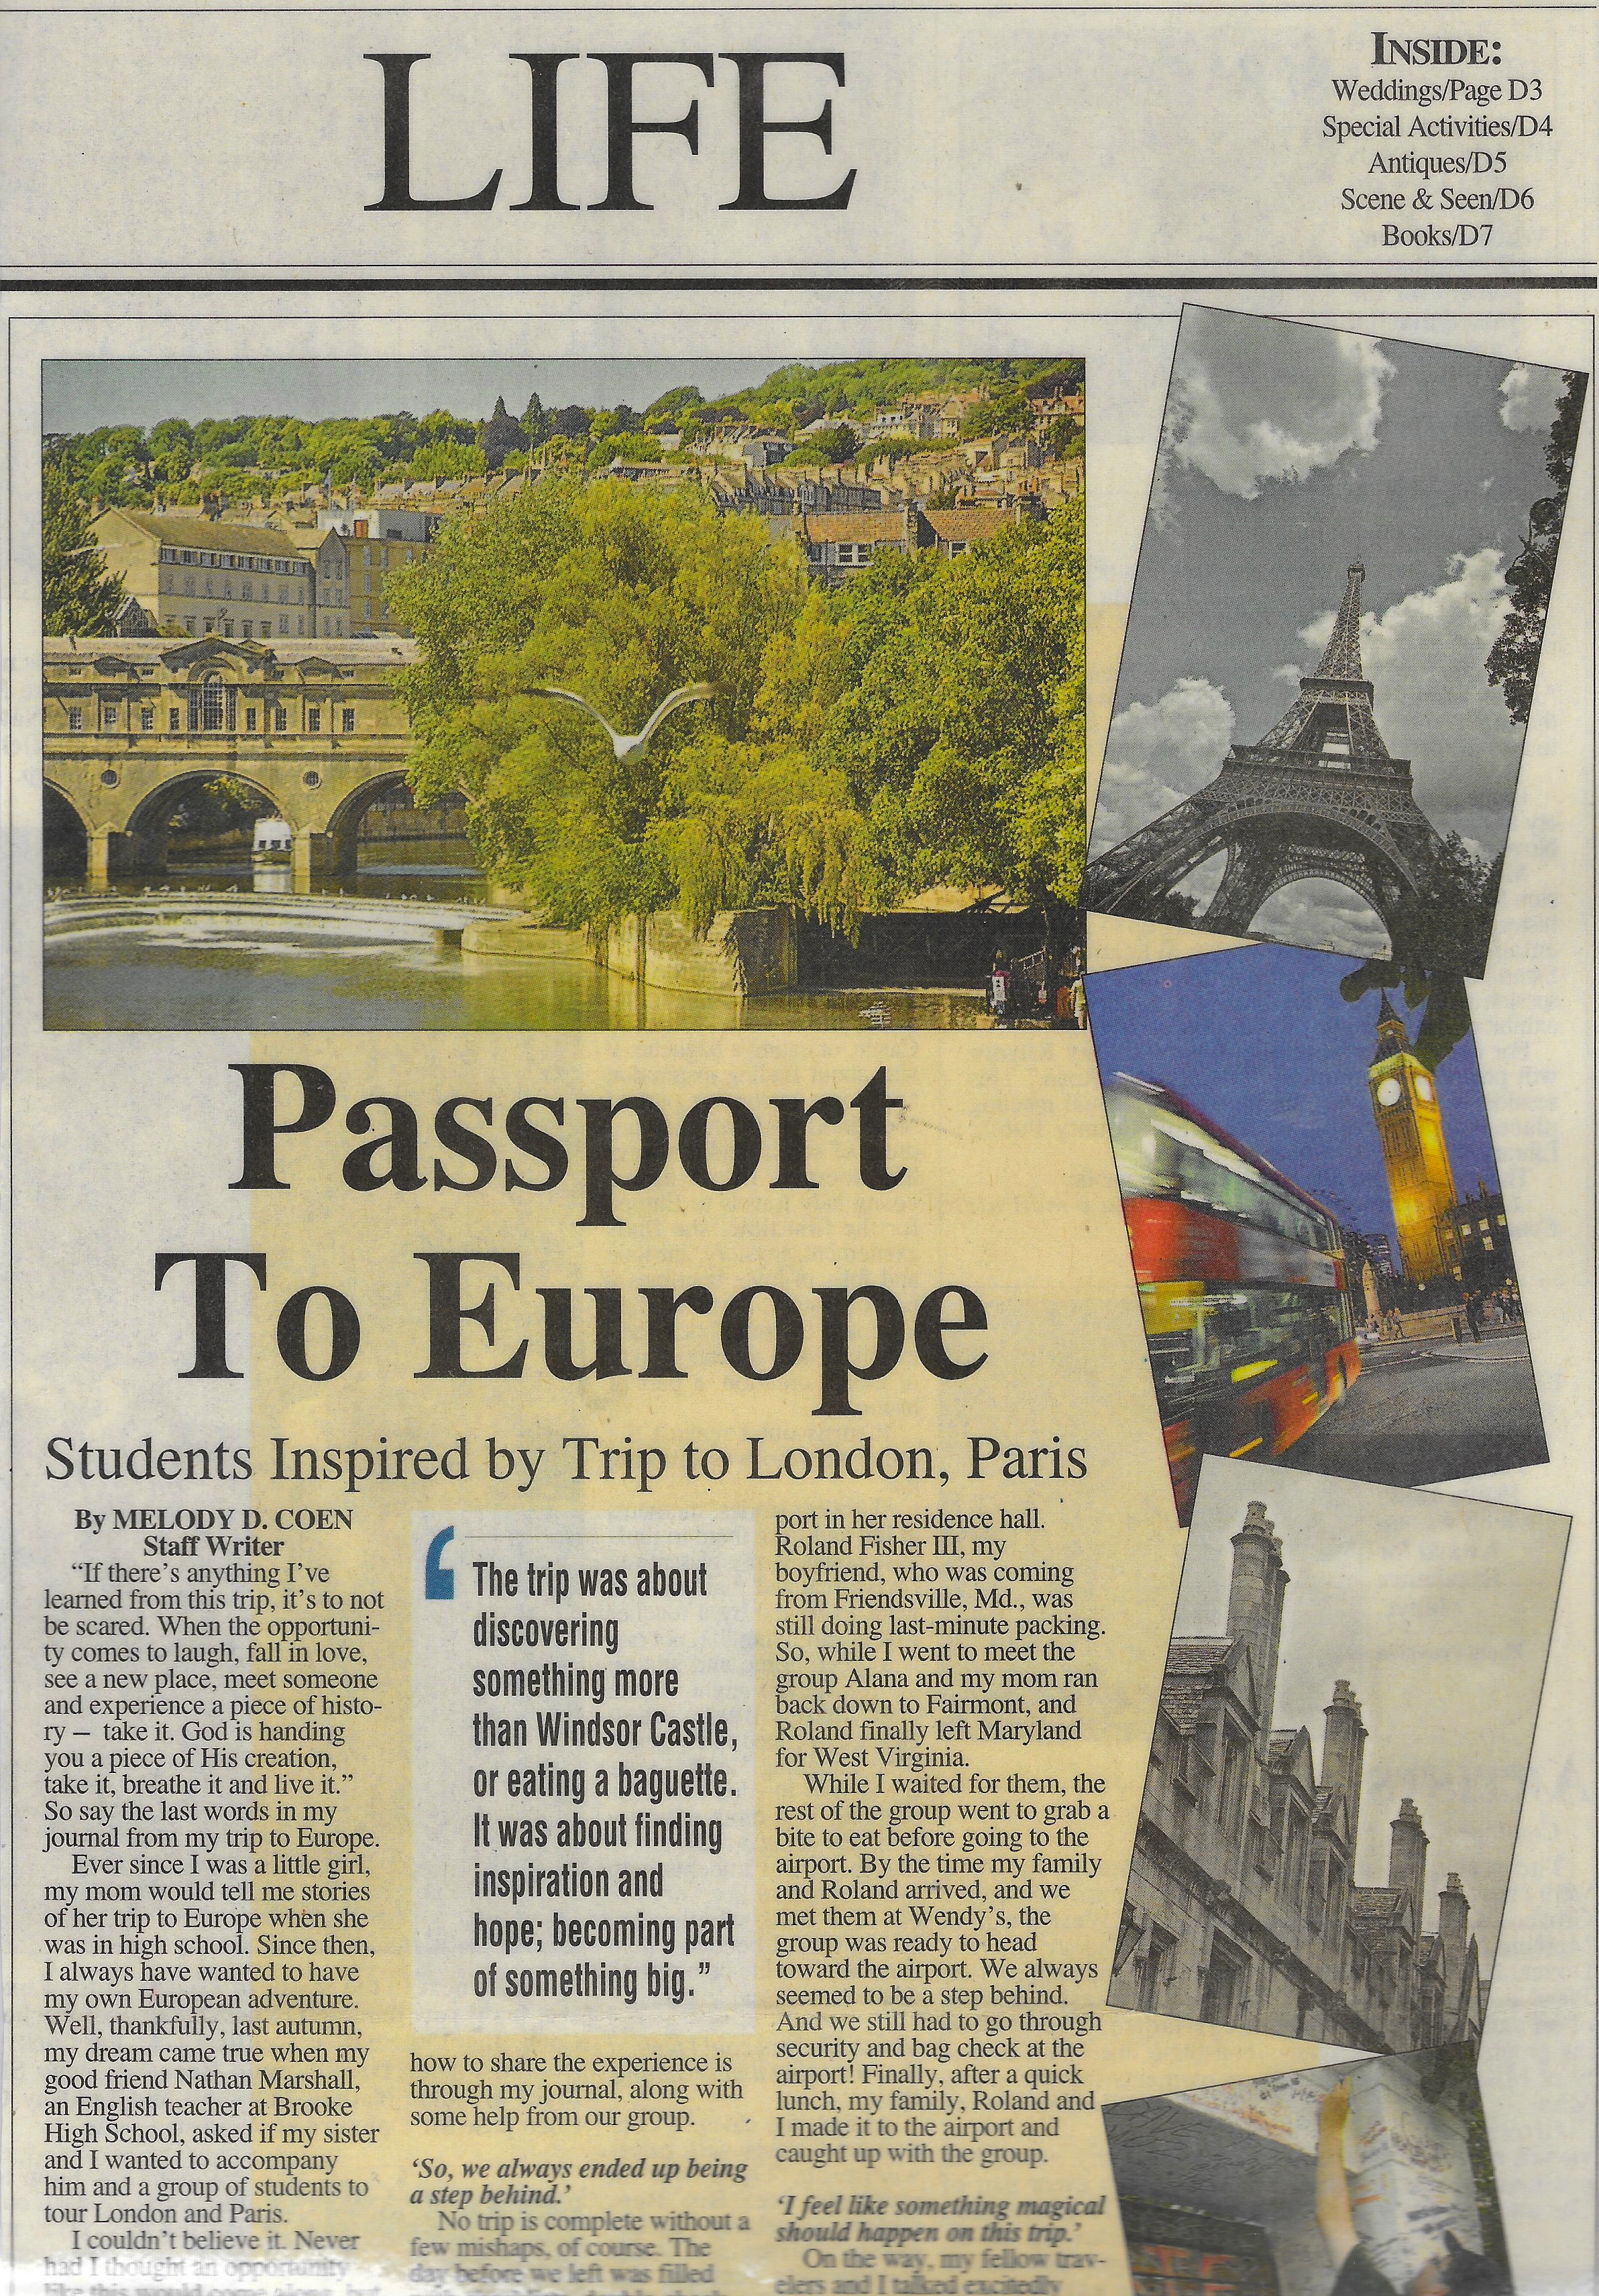 SOME PRESS FROM THE TOUR I LED IN 2011. CLICK HERE TO READ THE ENTIRE ARTICLE